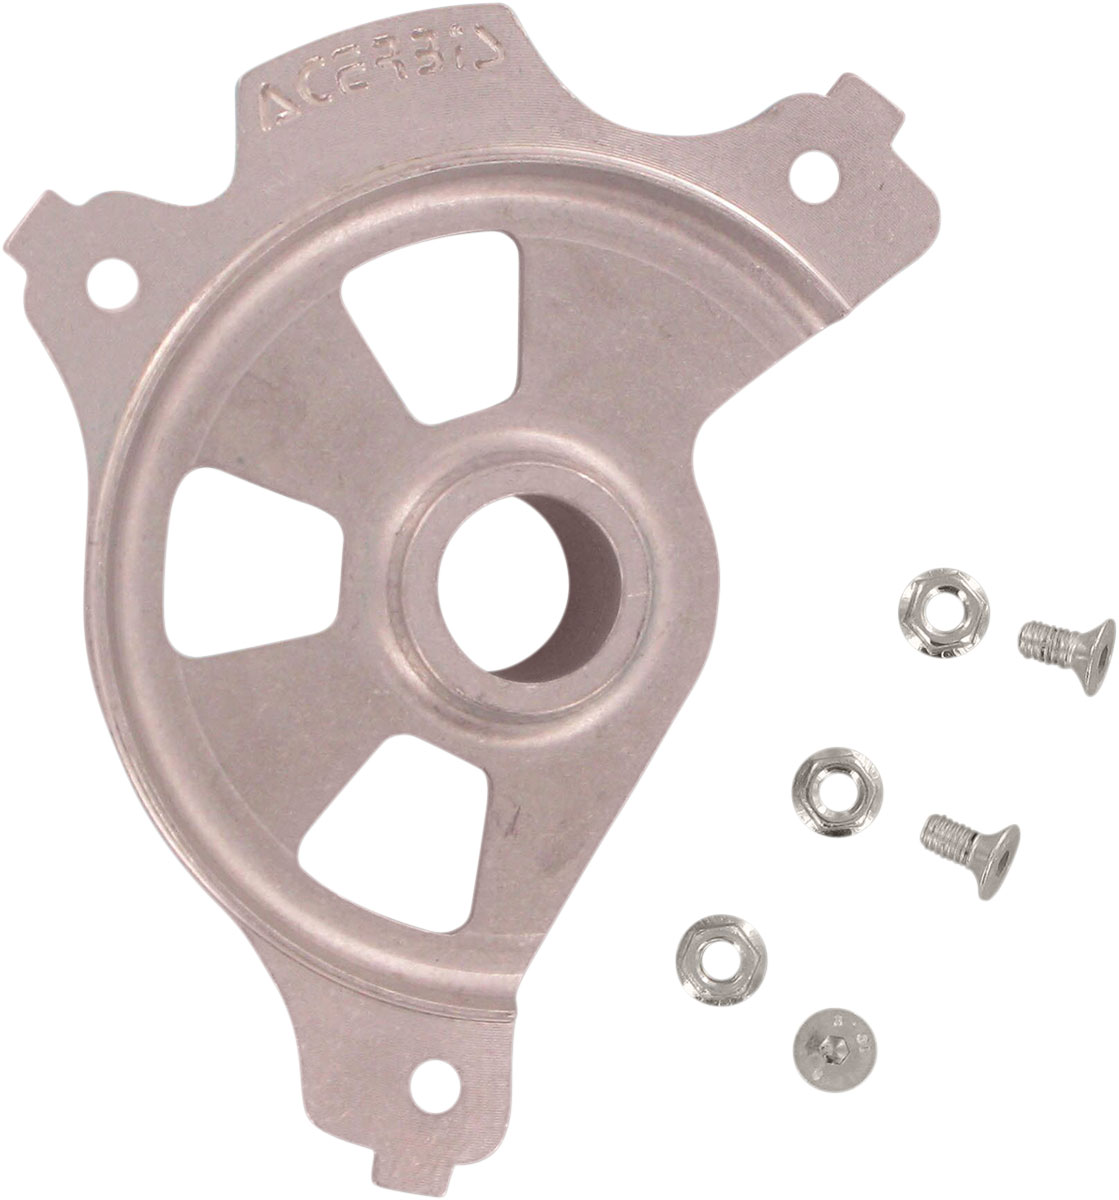 ACERBIS Mount Kit for X-Brake / Spider Evo Front Disc Covers (2043140059)